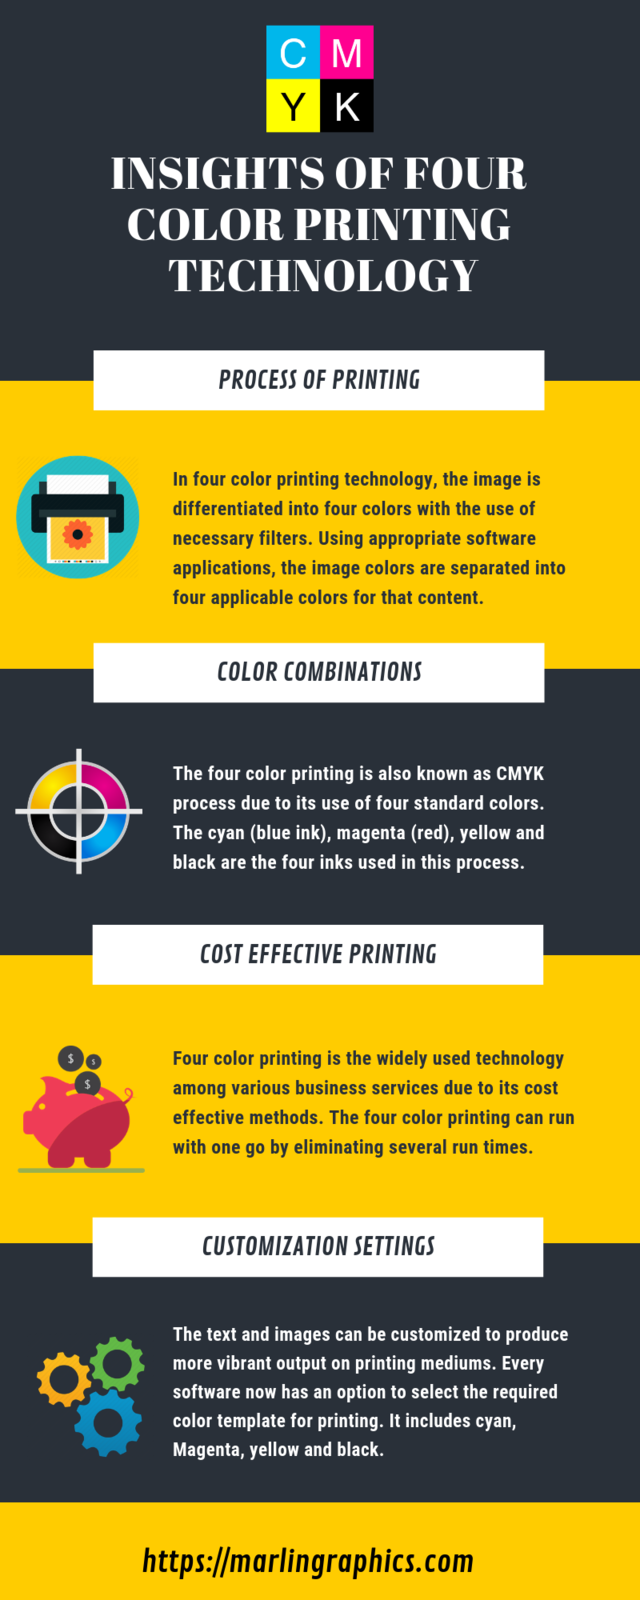 Insights of four color printing technology